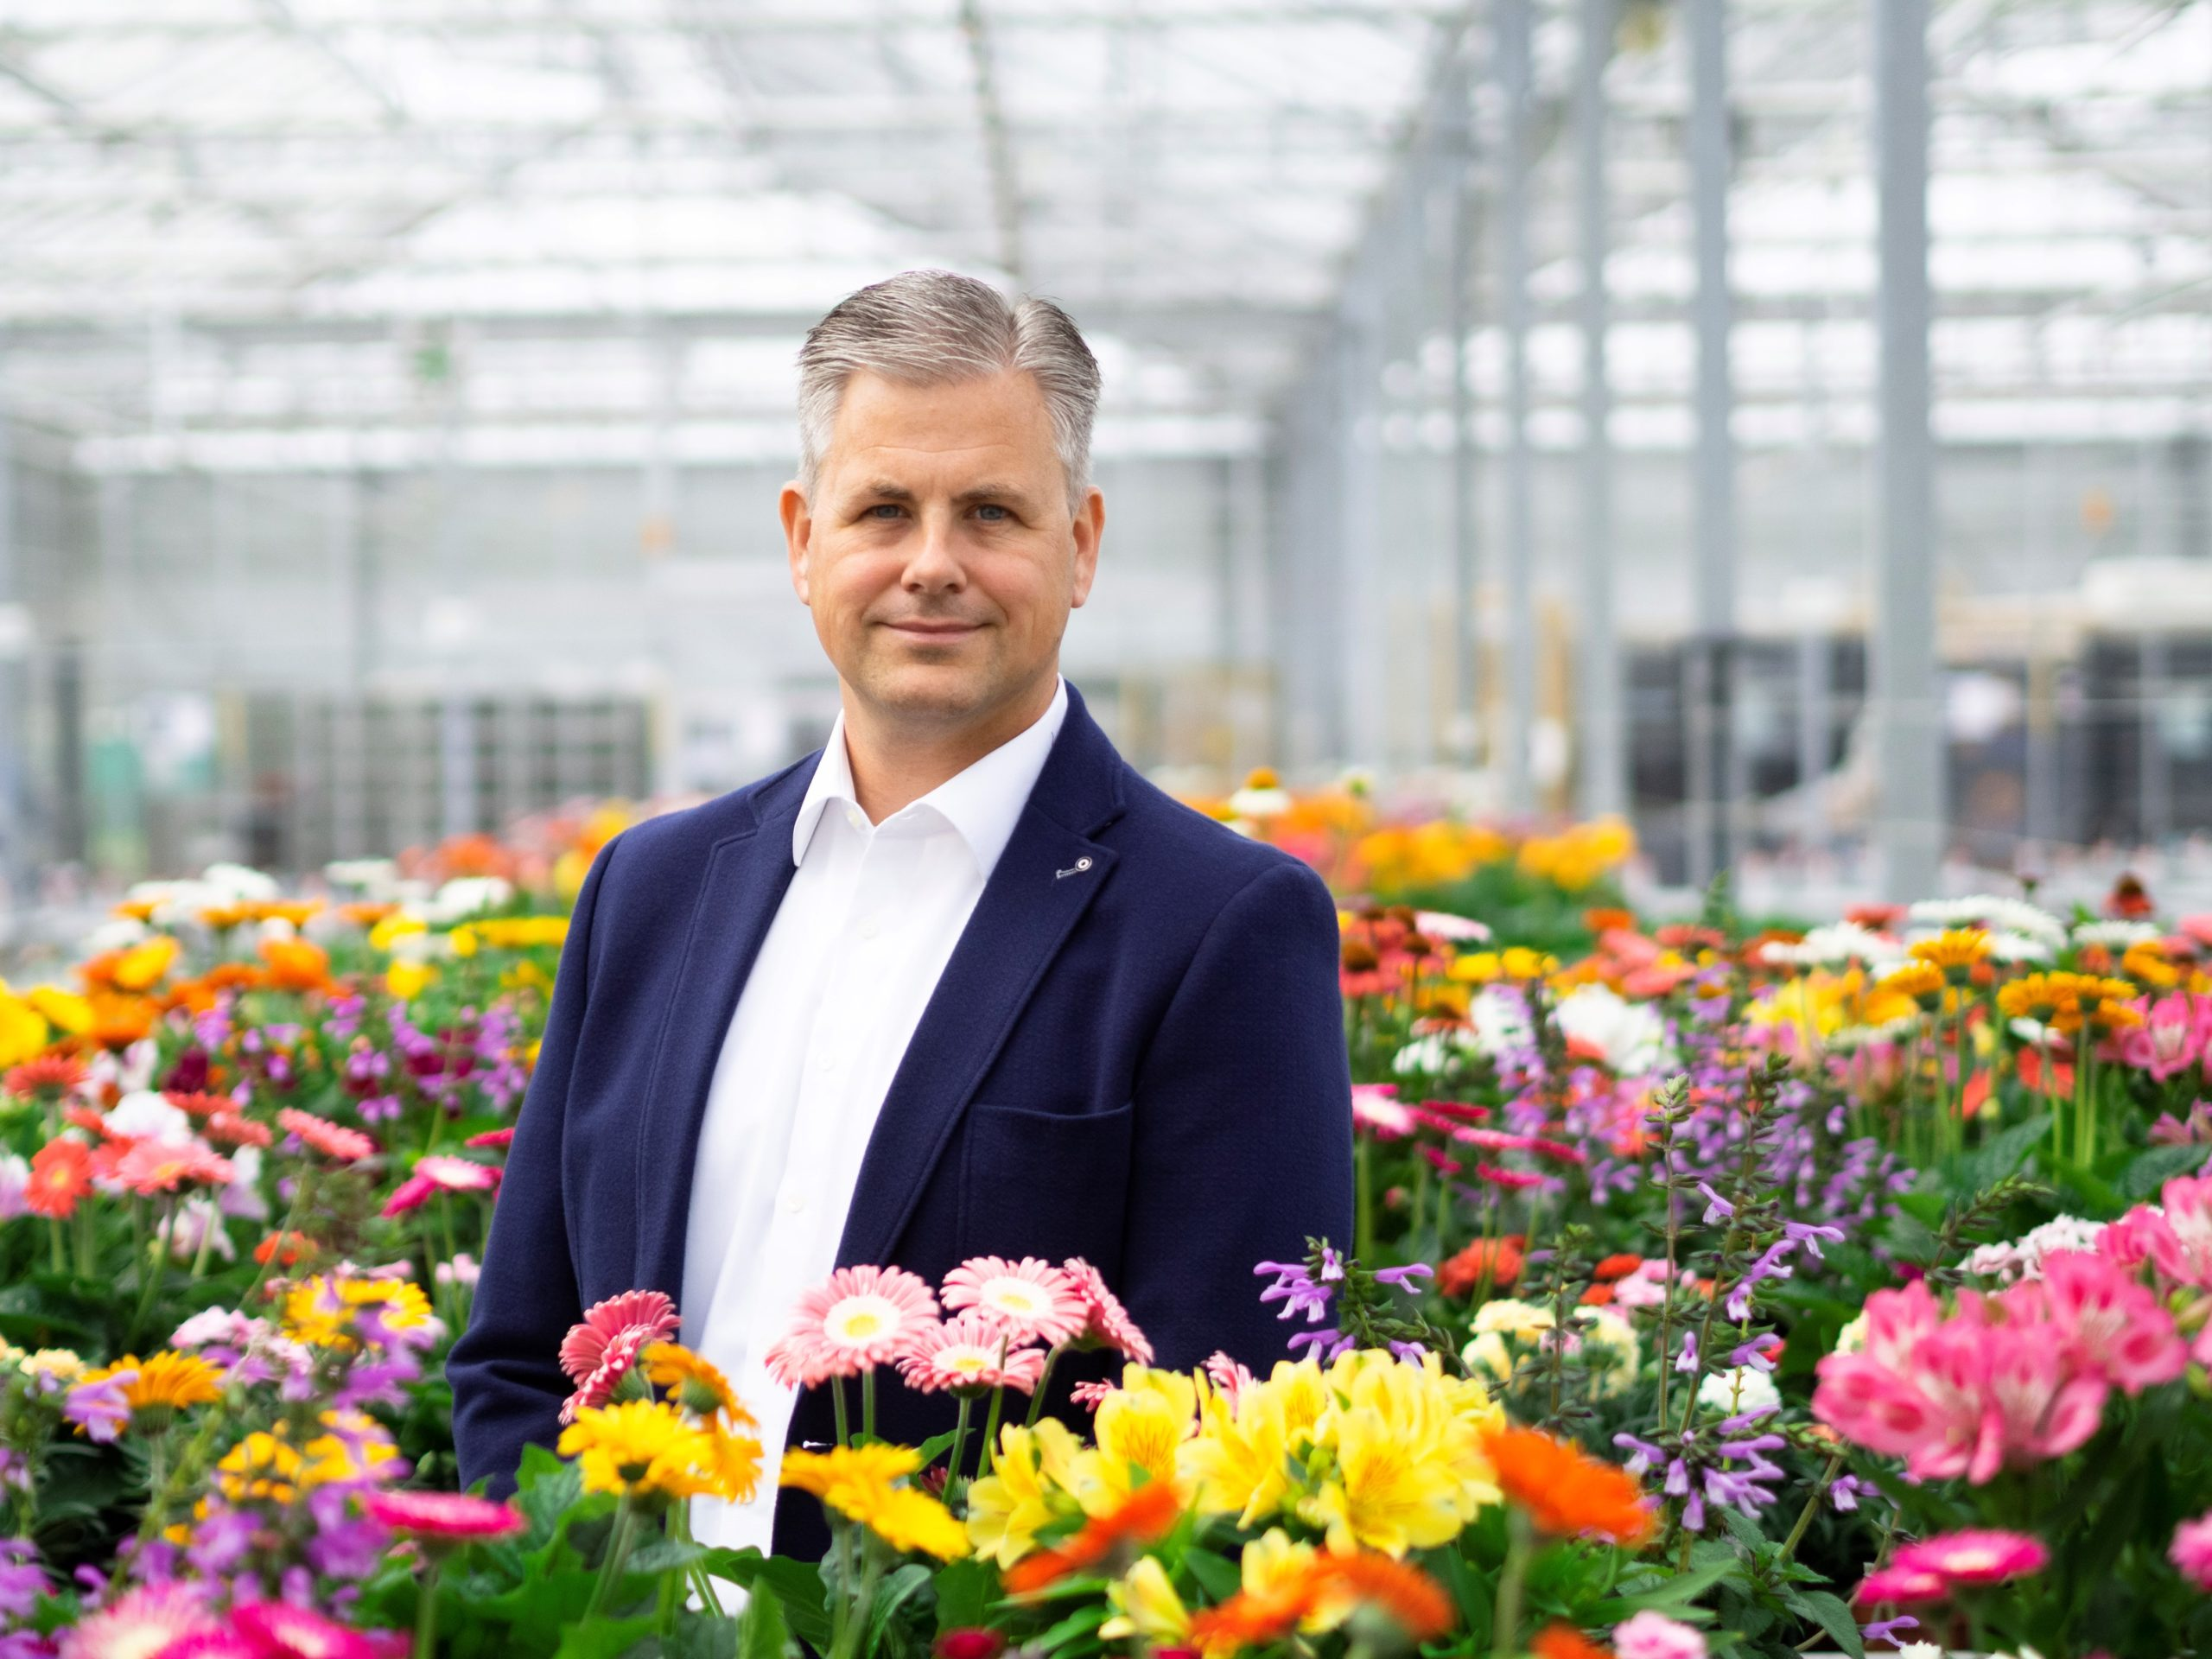 HilverdaFlorist - Bart Sneek - Commercial Director